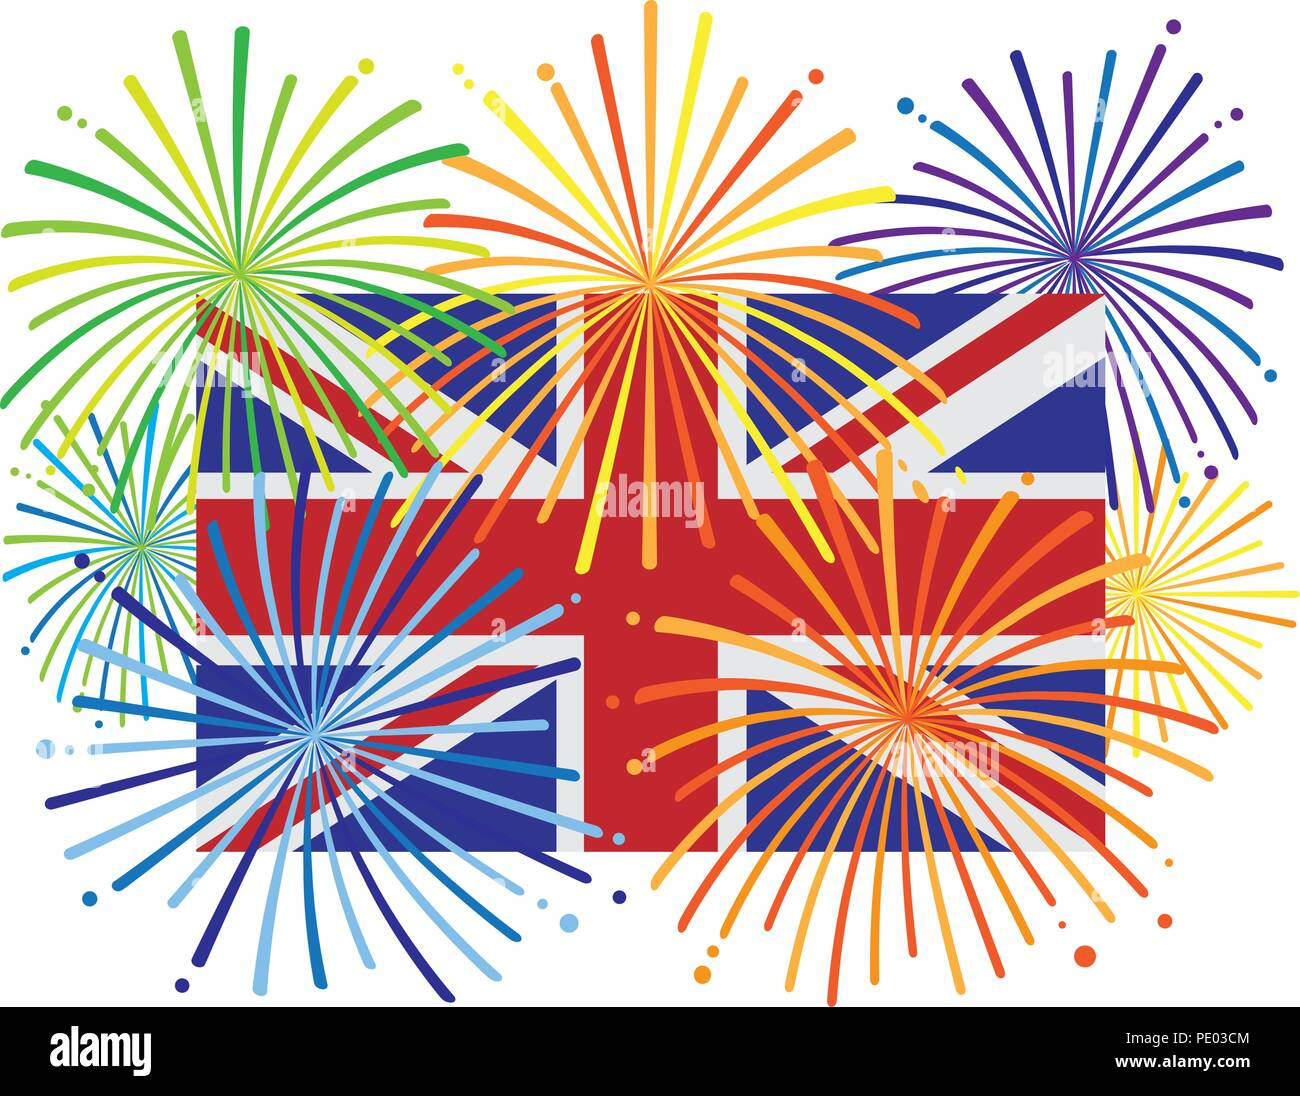 Great Britain England Jack Union Flag with Fireworks Color Illustration Stock Vector